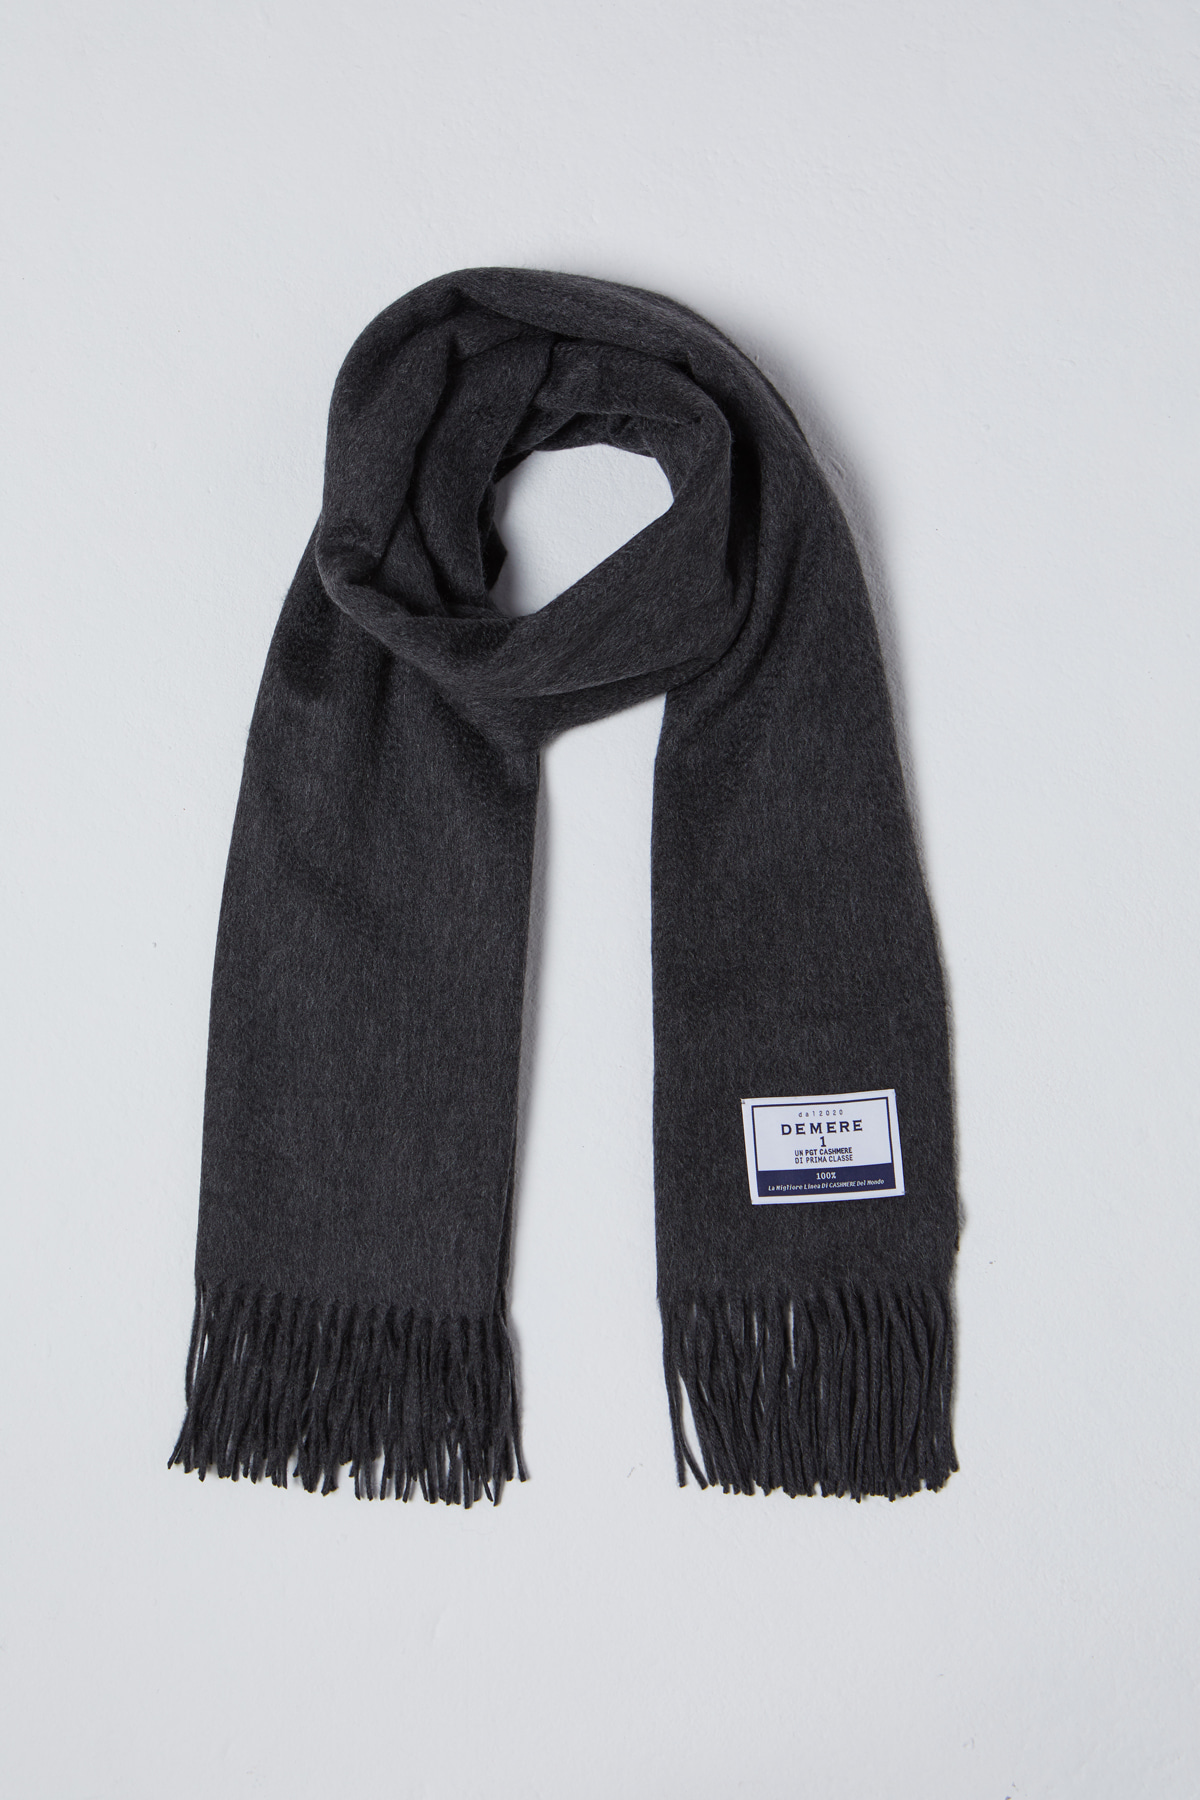 DEMERE CASHMERE 100 MUFFLER (CHACOAL GRAY)